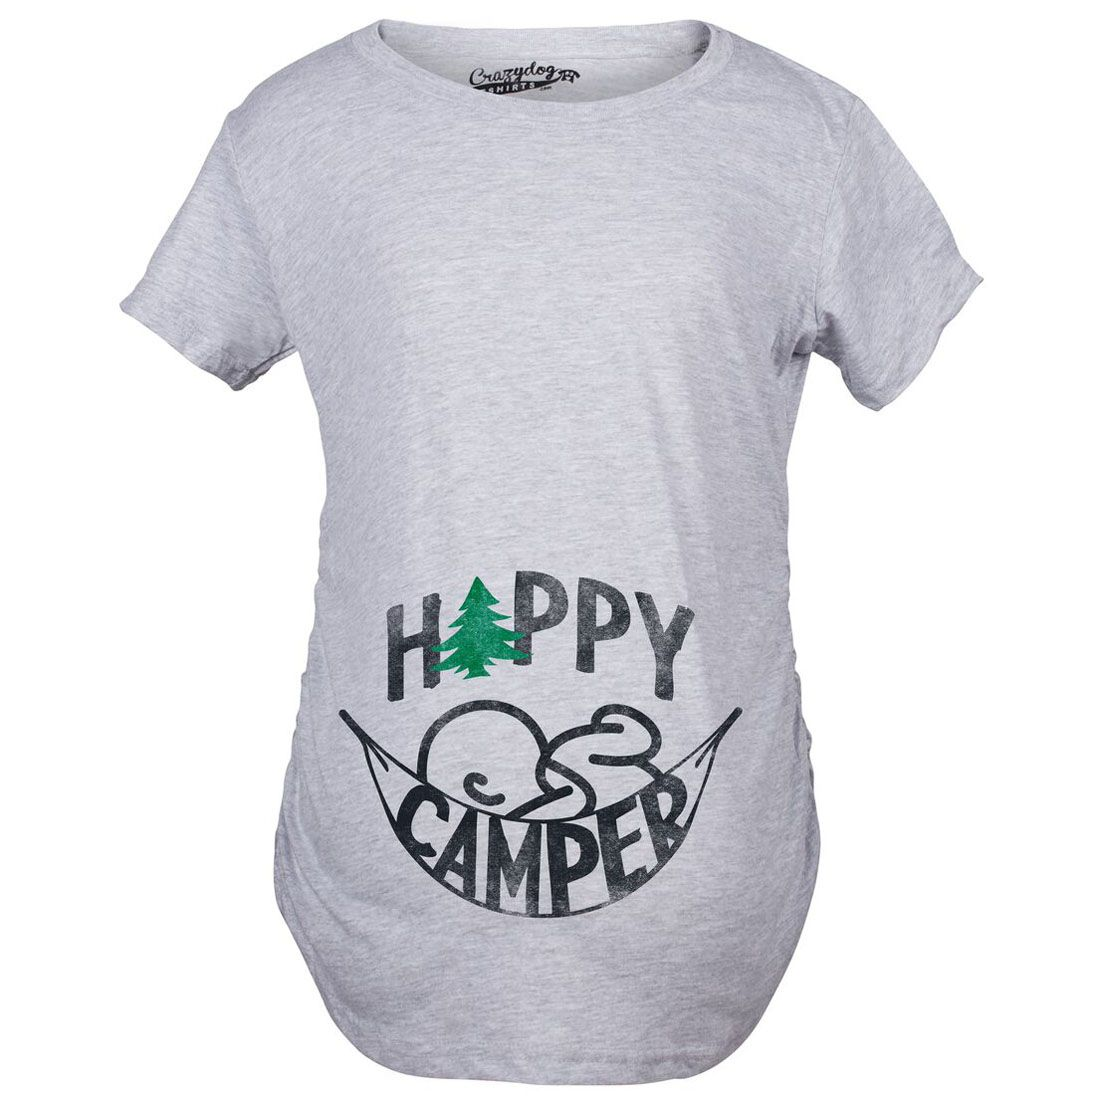 af9949ece Maternity Happy Camper Funny Camping Baby Bump Pregnancy Announcement T  shirt | CrazyDog Tshirts